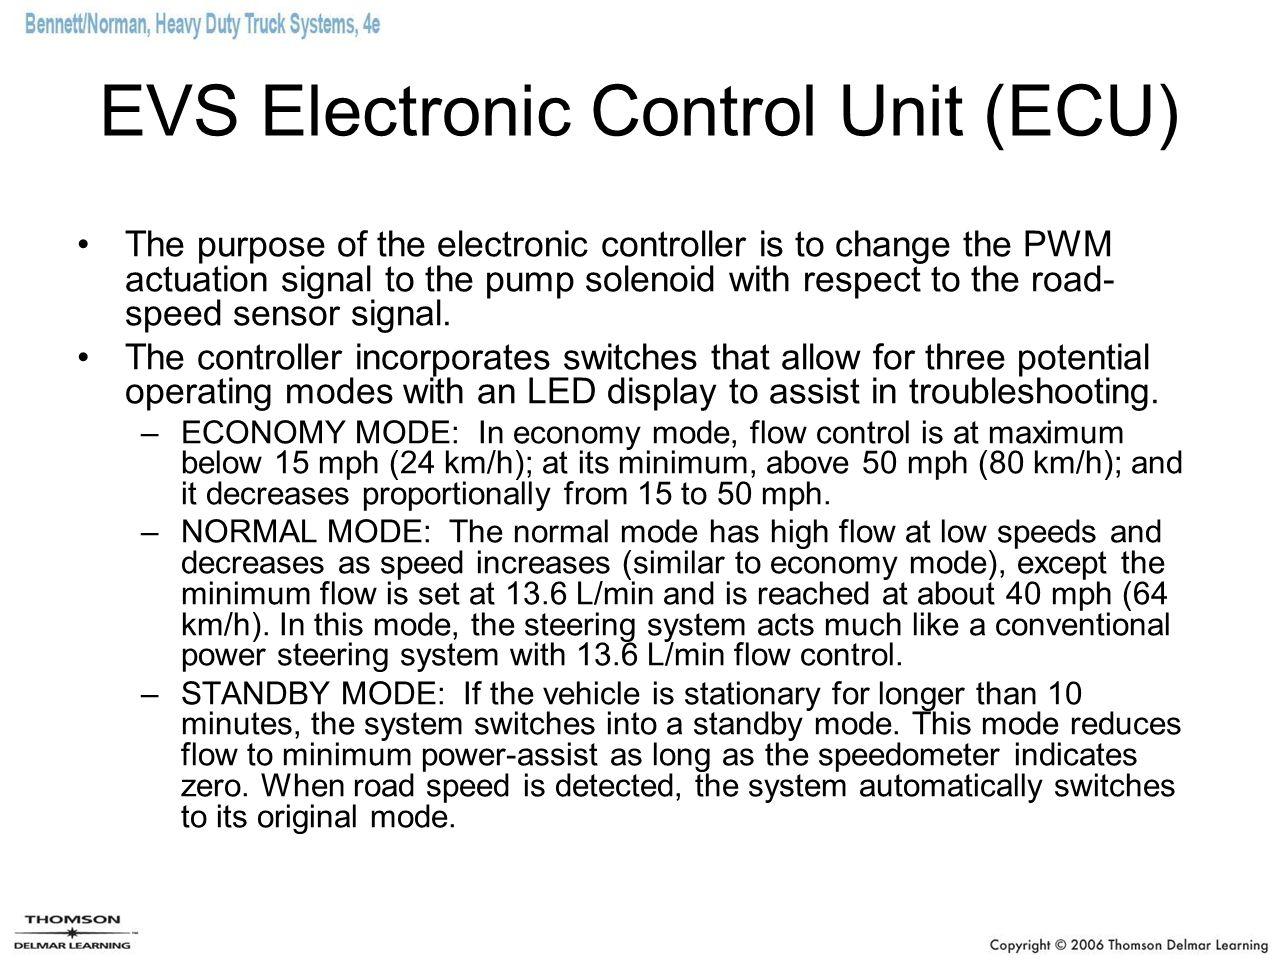 EVS Electronic Control Unit (ECU)